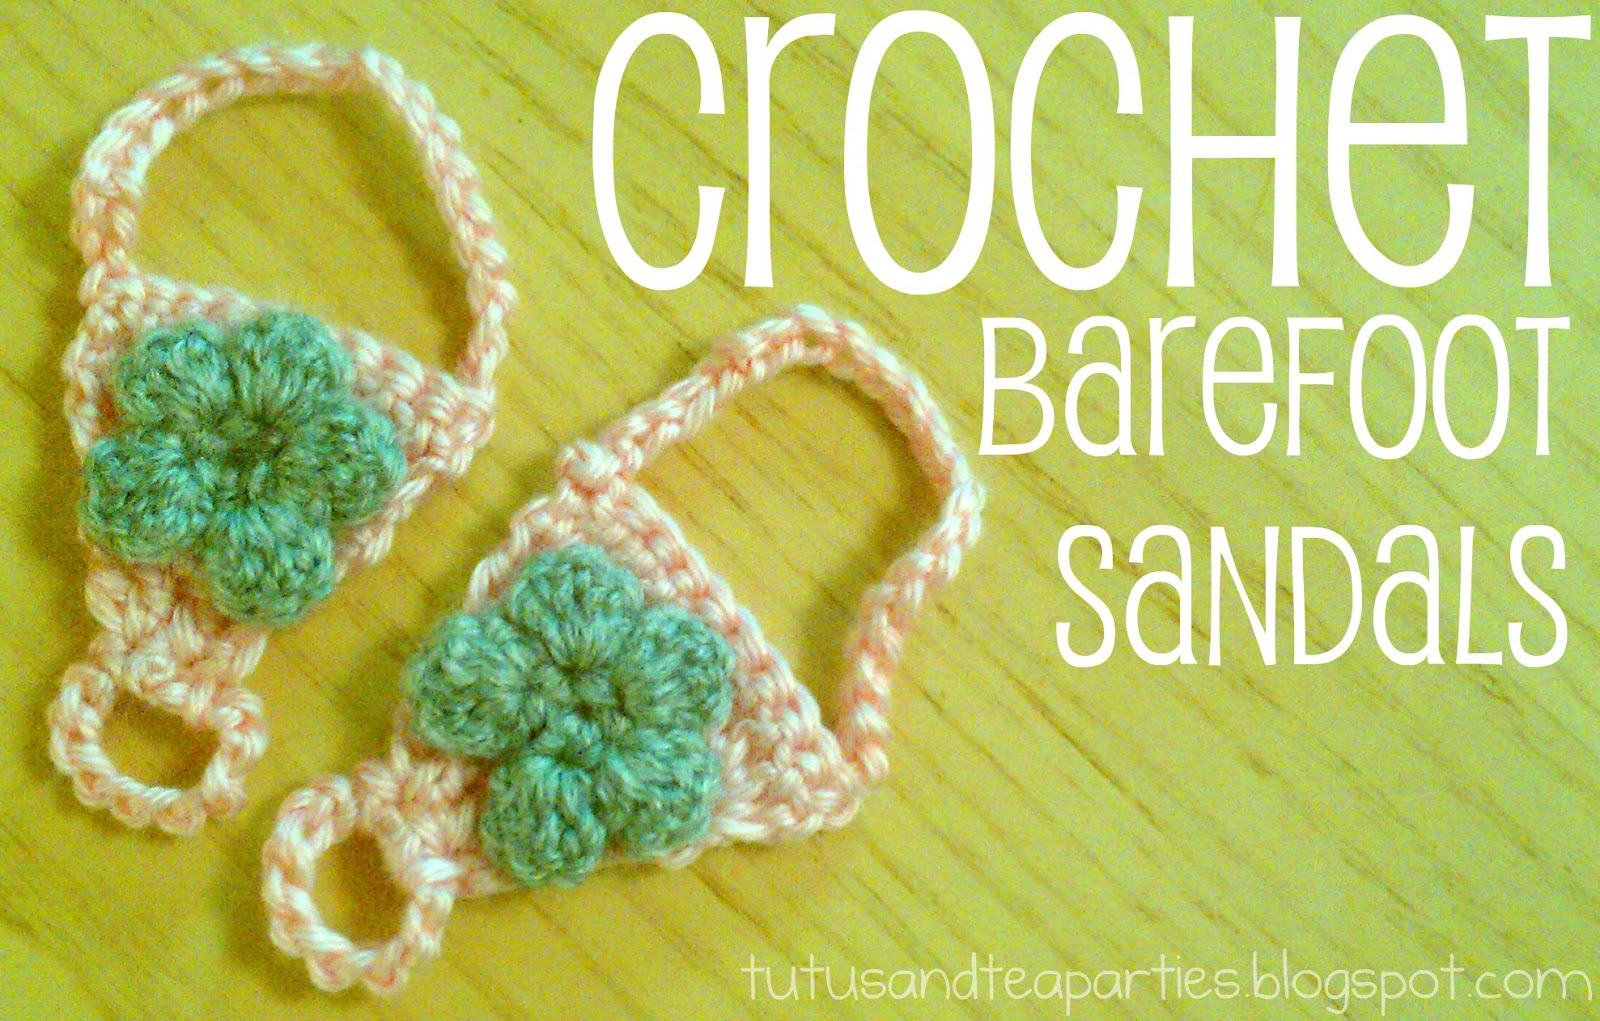 Crochet Pattern For Baby Barefoot Sandals : bodypainting car automotive gp beauty: Crochet Barefoot ...